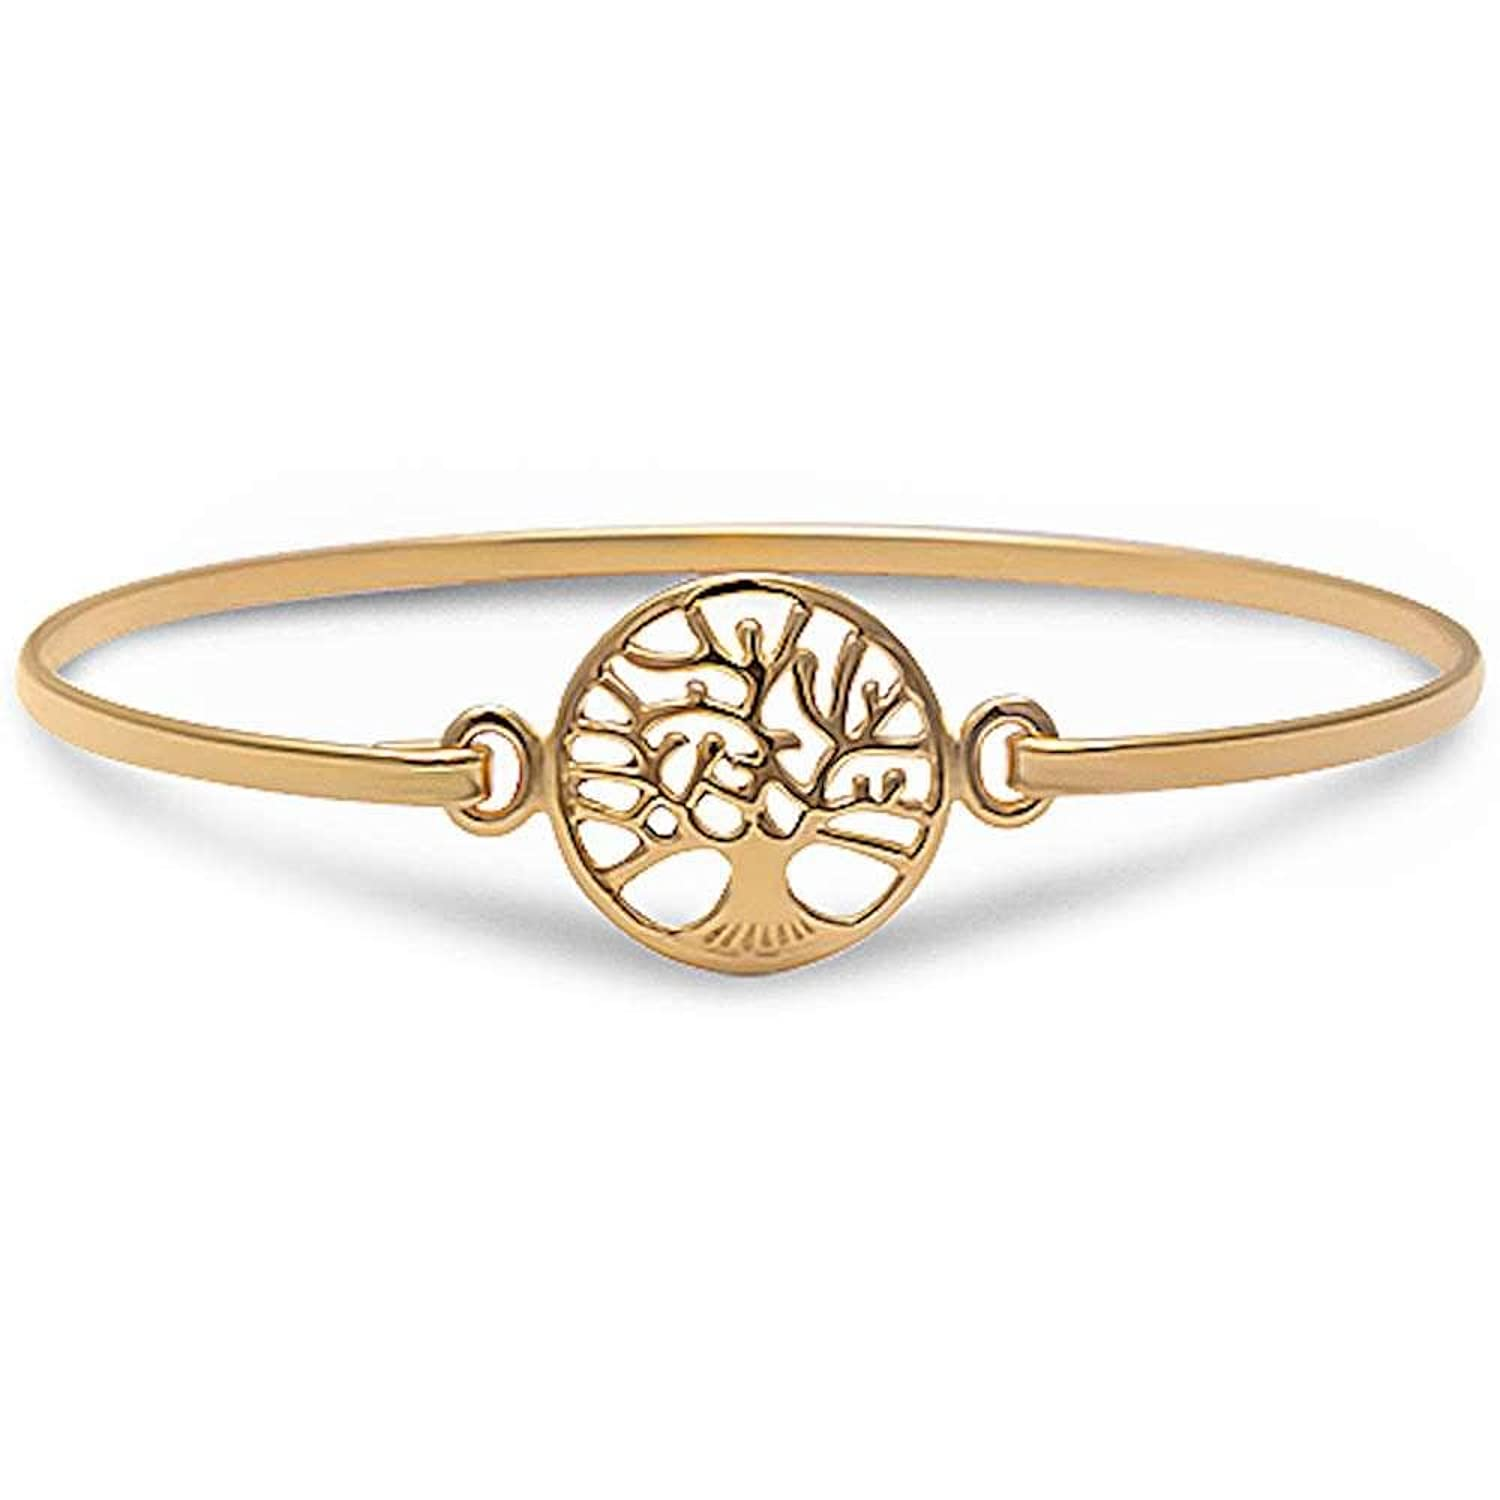 """Brightt Yellow Gold Plated Solid Tree of Life Bangle Style .925 Sterling Silver Bracelet 5. Measurements: 2.5""""x2""""(cross 1""""x.5"""") Wrist 7.25"""" 60mm wide 2.3"""""""